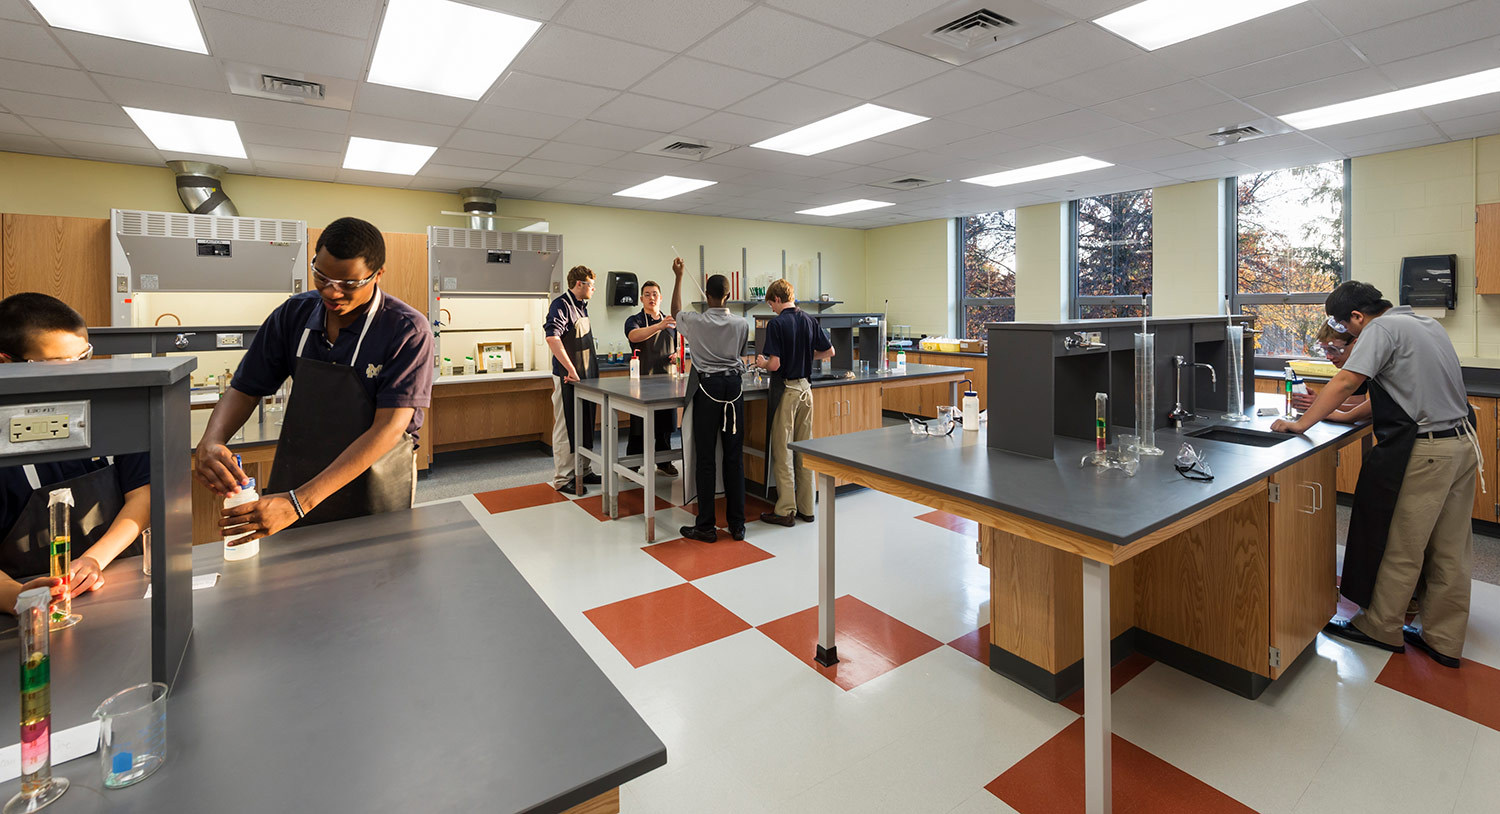 Malden Catholic High School, Science Center Renovation